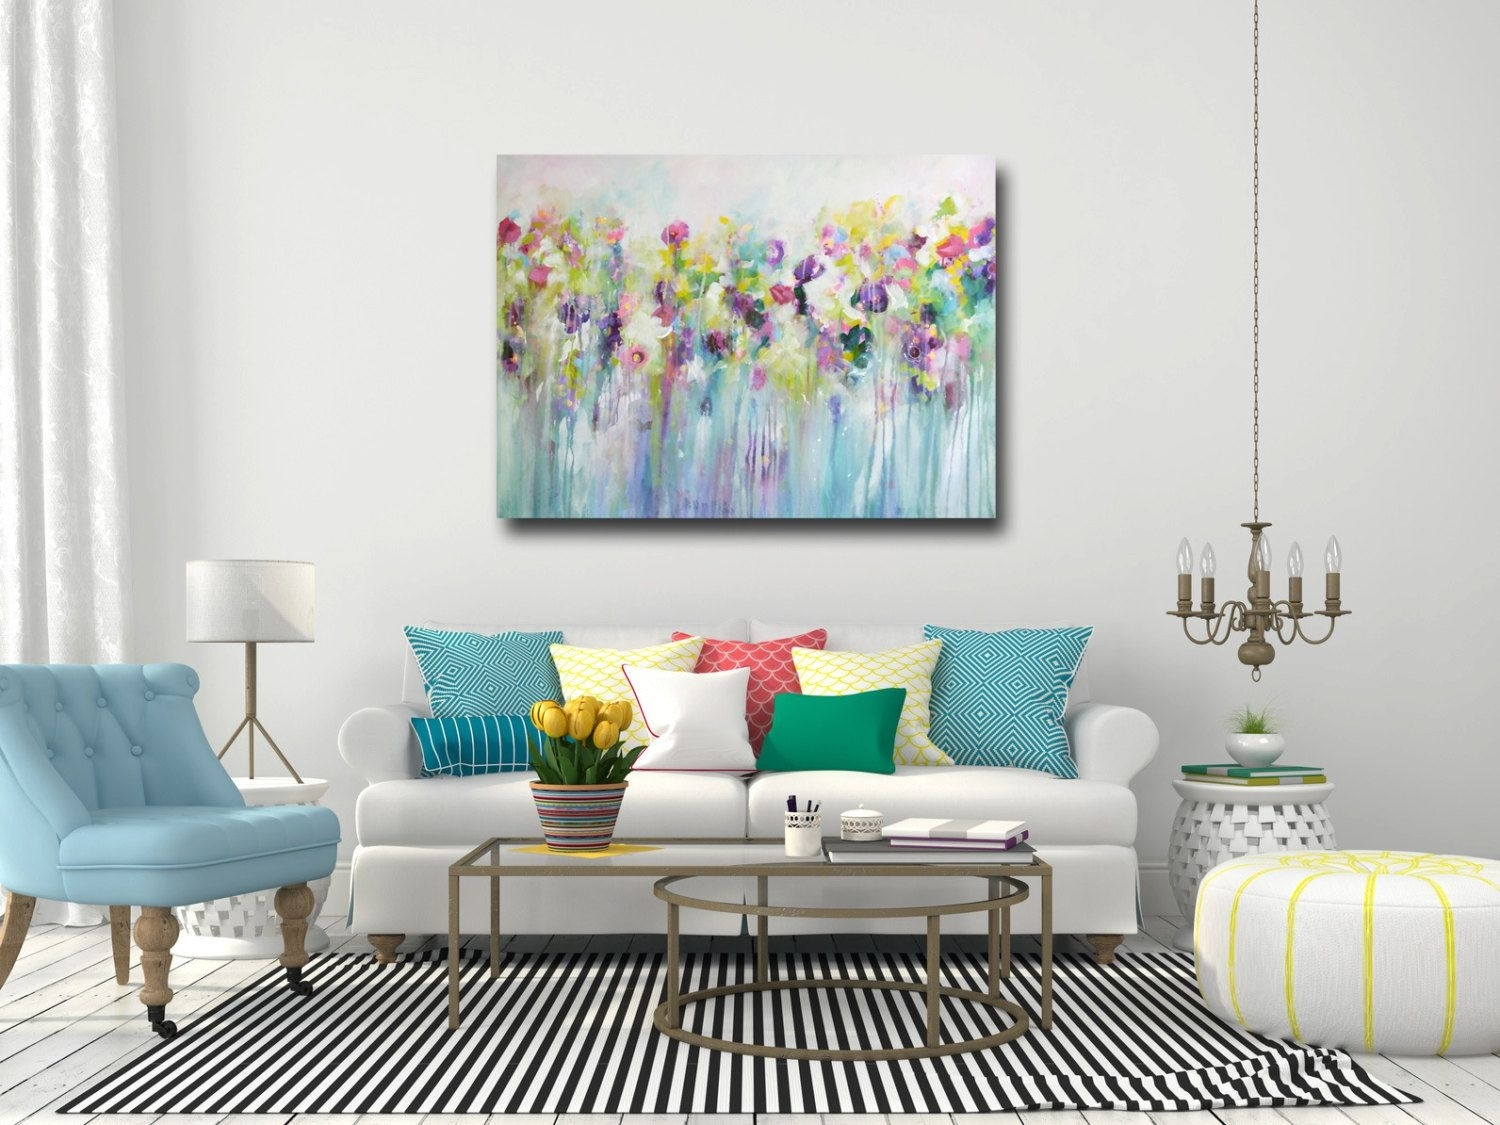 Large Wall Art, Canvas Art, Abstract Floral Canvas Print, Giclee Throughout Most Popular Abstract Floral Wall Art (View 5 of 20)